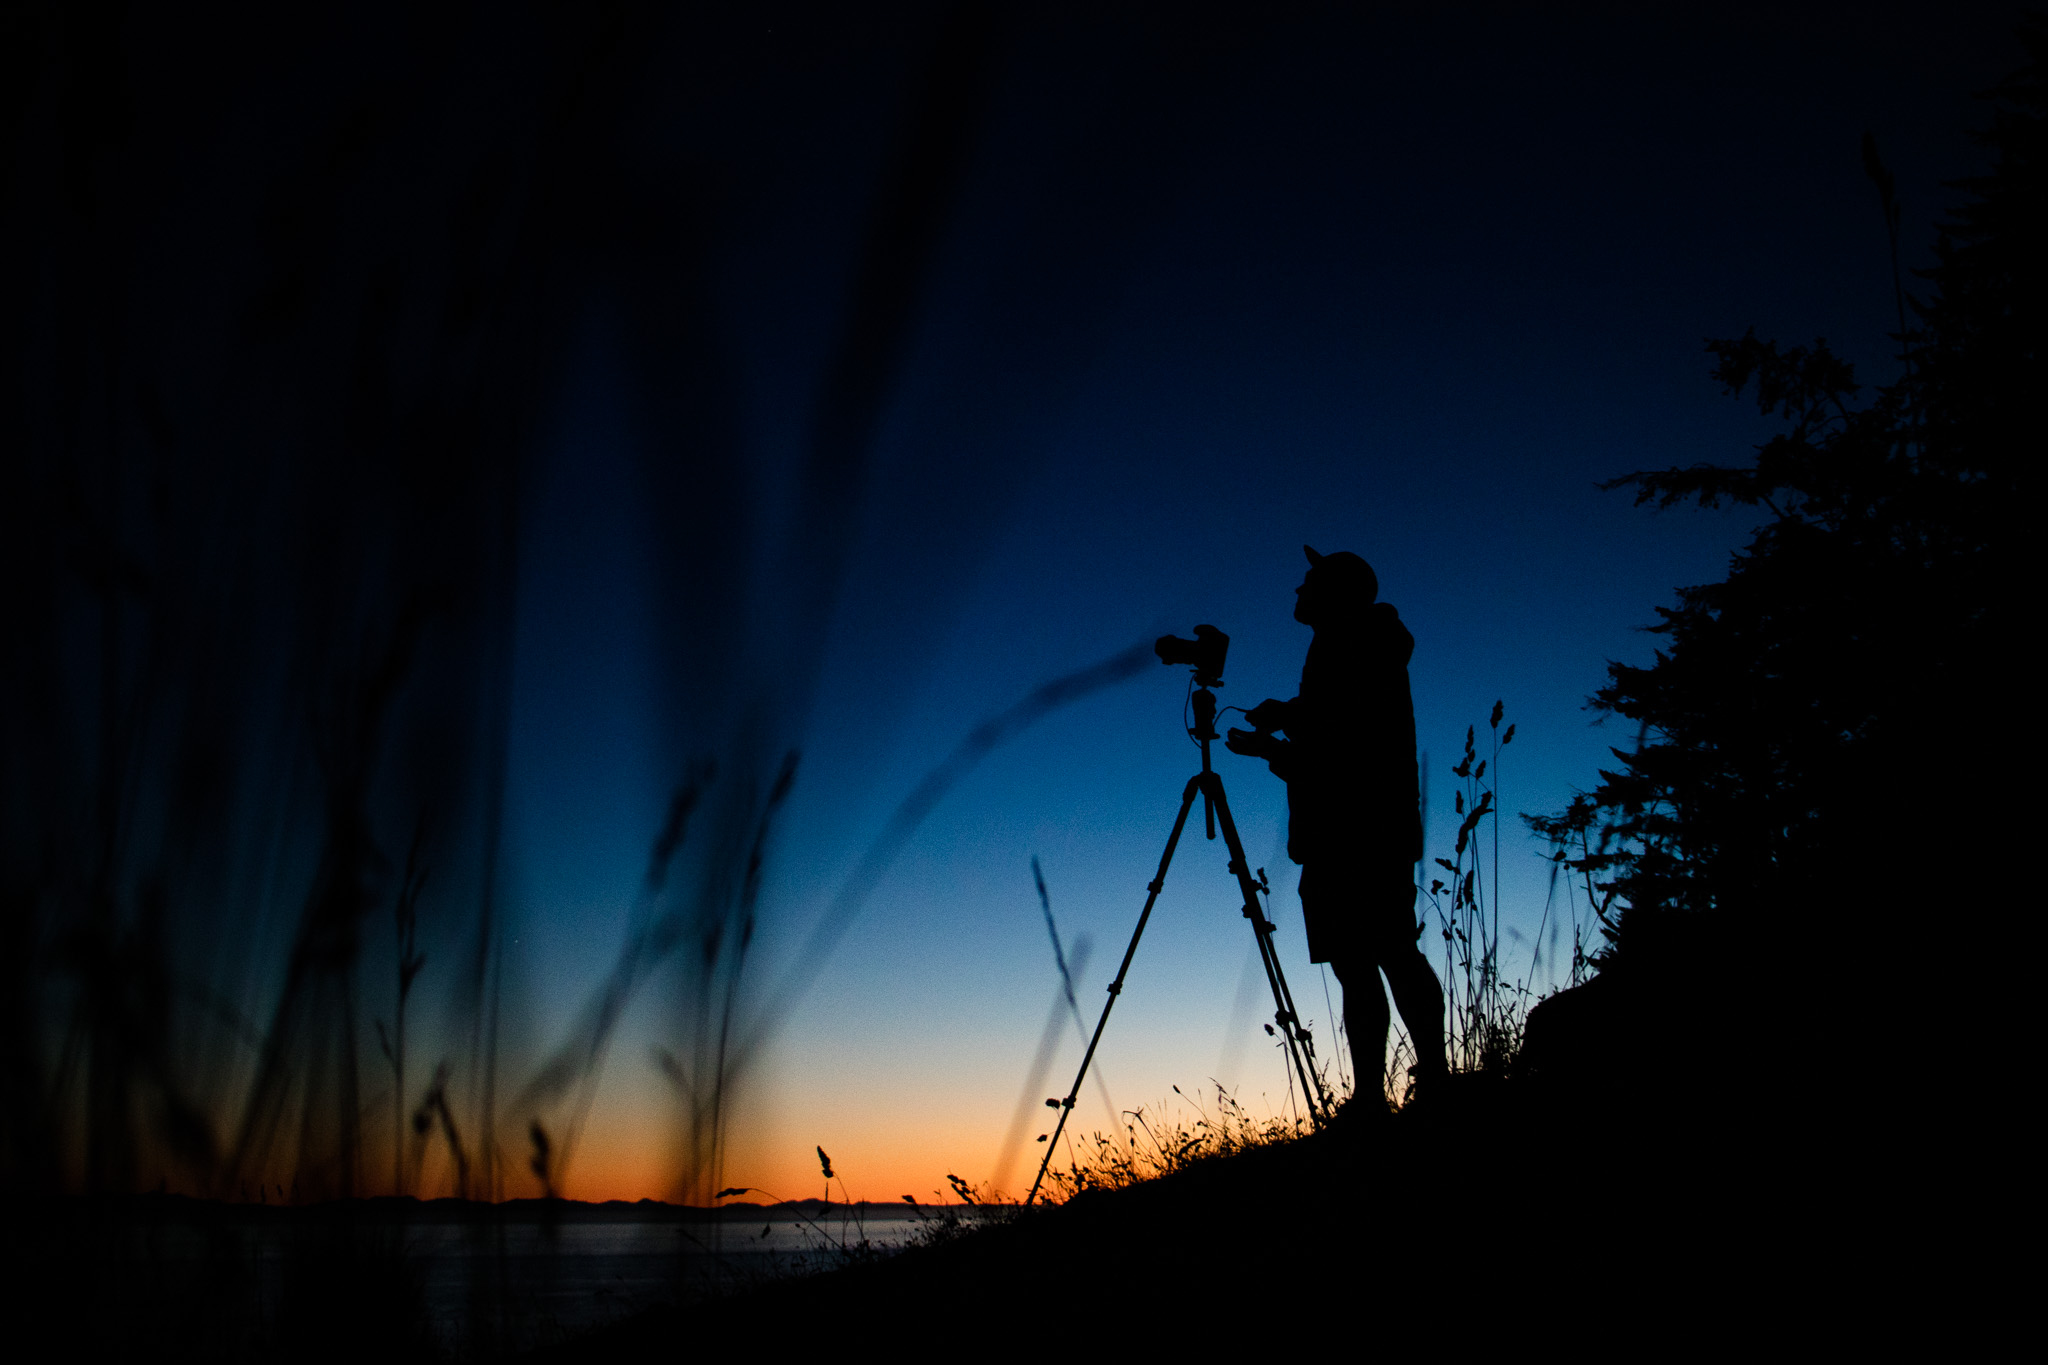 Following the trip to Oregon, we headed back to Sheringham Point for Larryn to shoot a timelapse of the night sky with the lighthouse. I captured this portrait of him shortly after sunset.